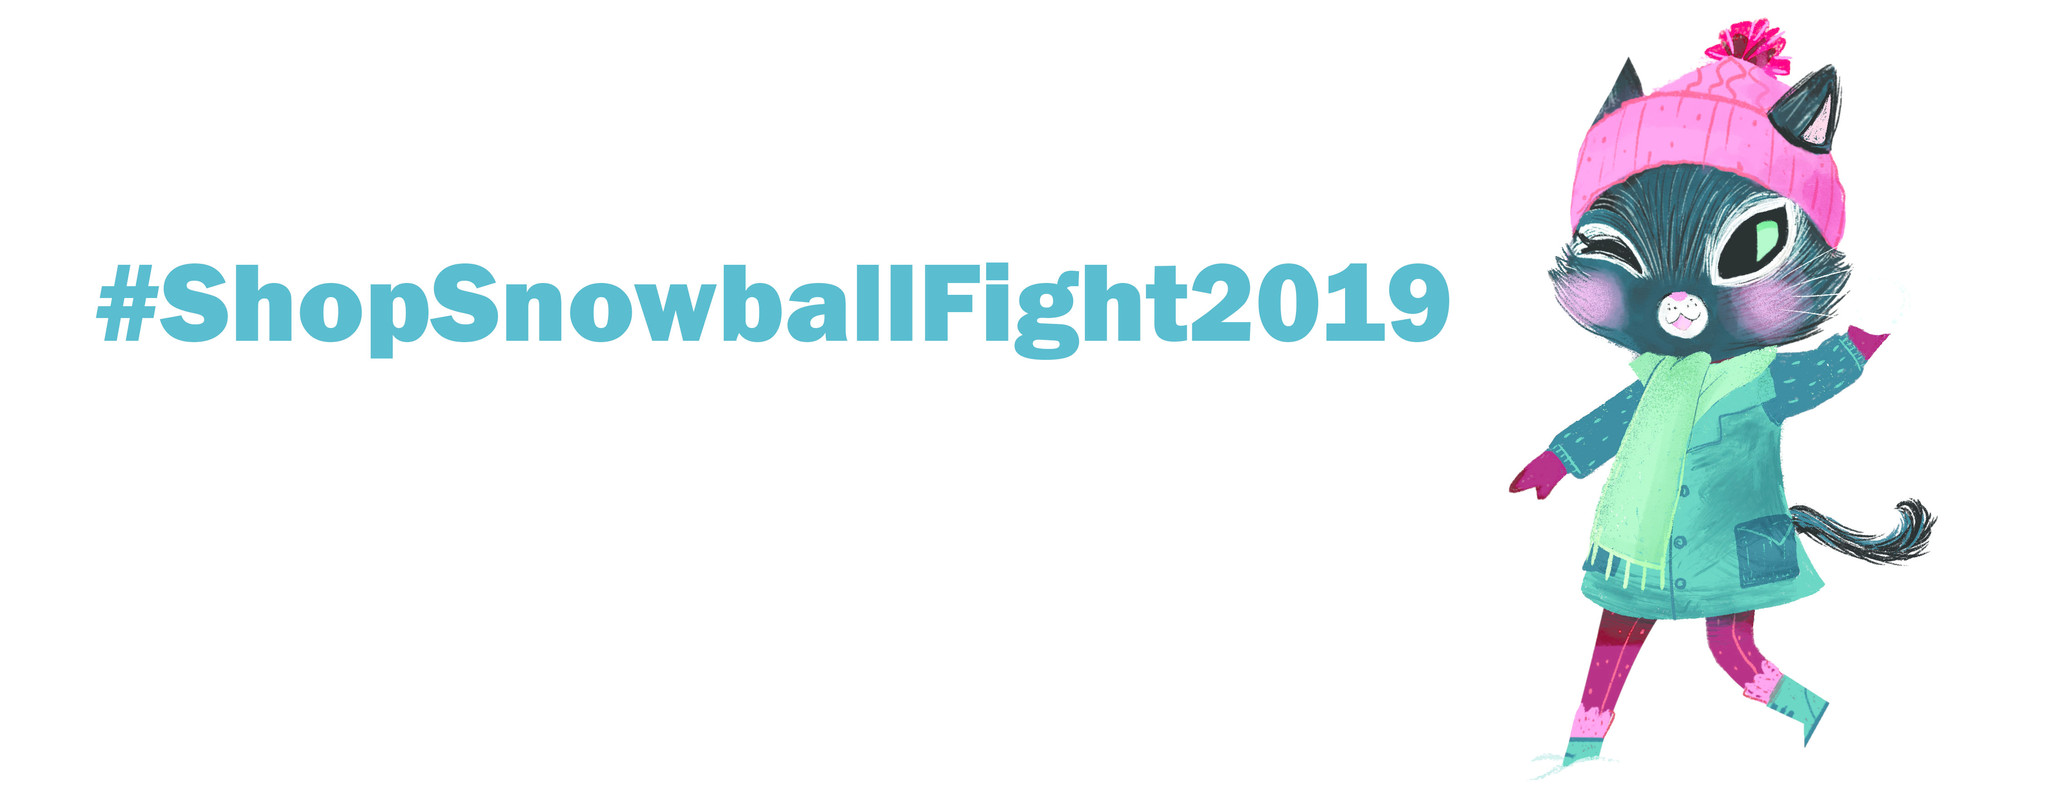 #ShopSnowballFight2019